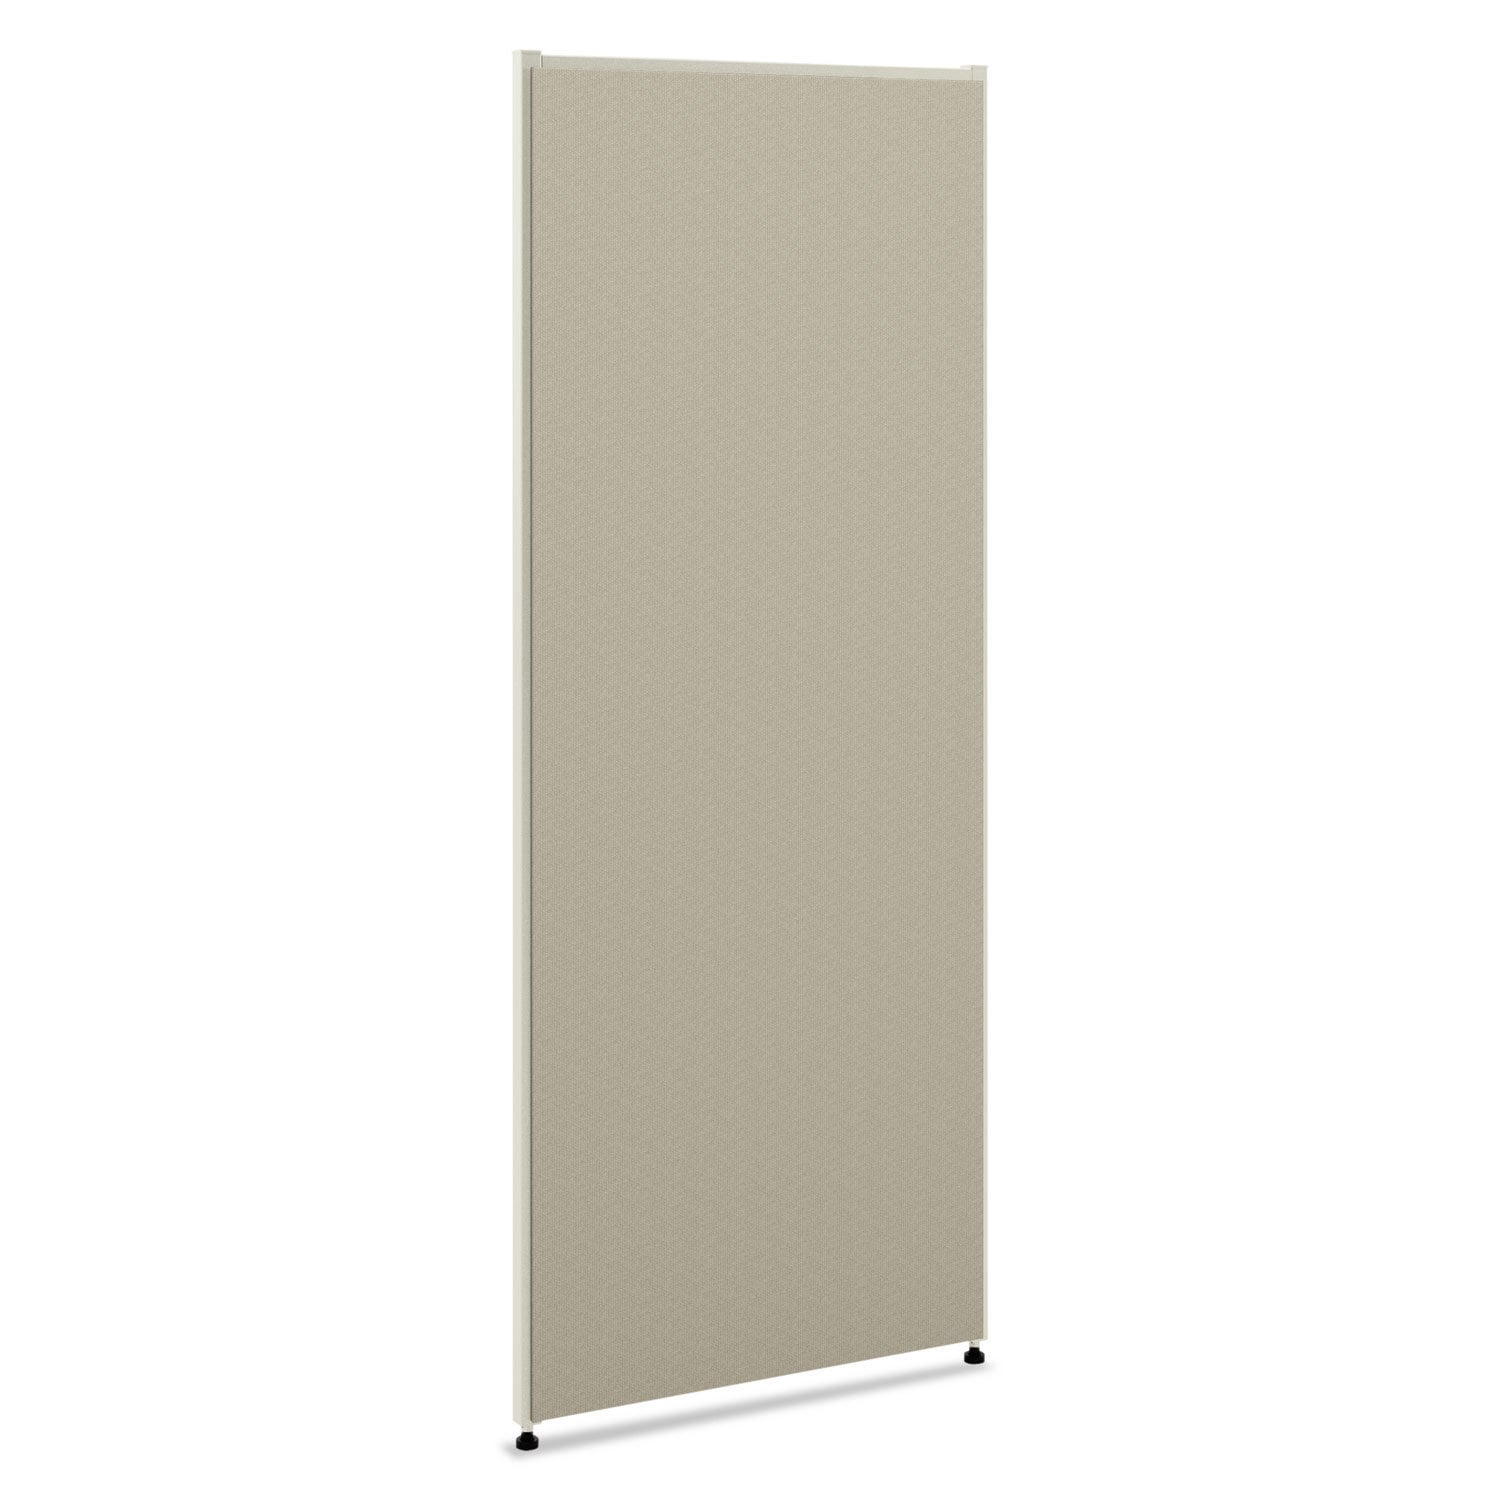 basyx Versé Office Panel, 36w x 60h, Grey (Grey)